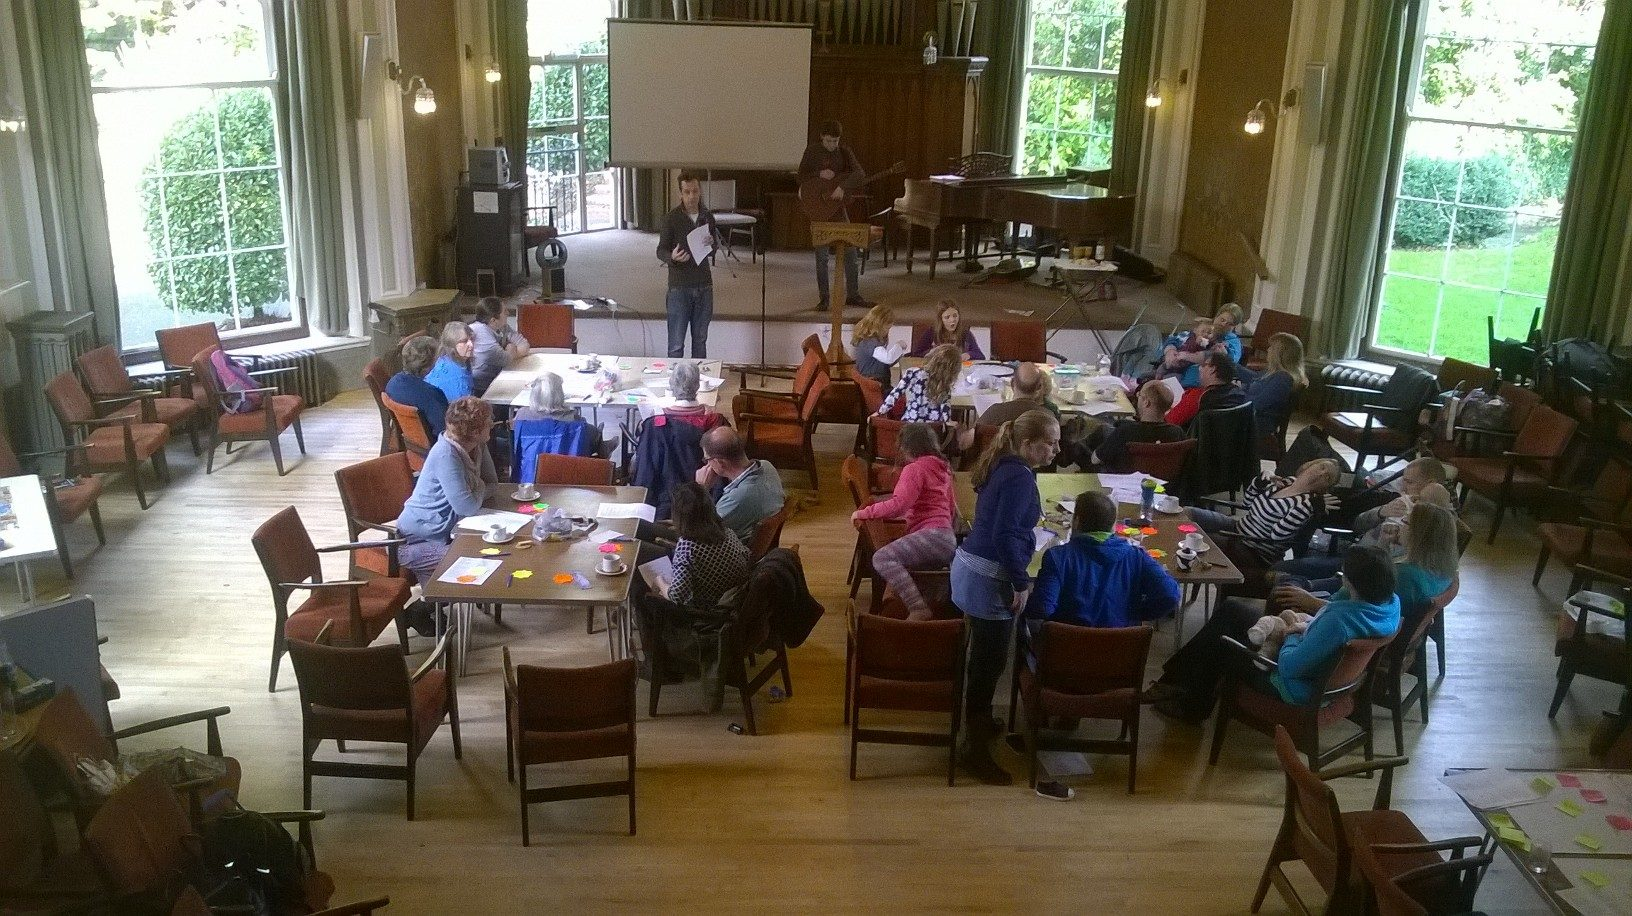 A grand setting for our worship together